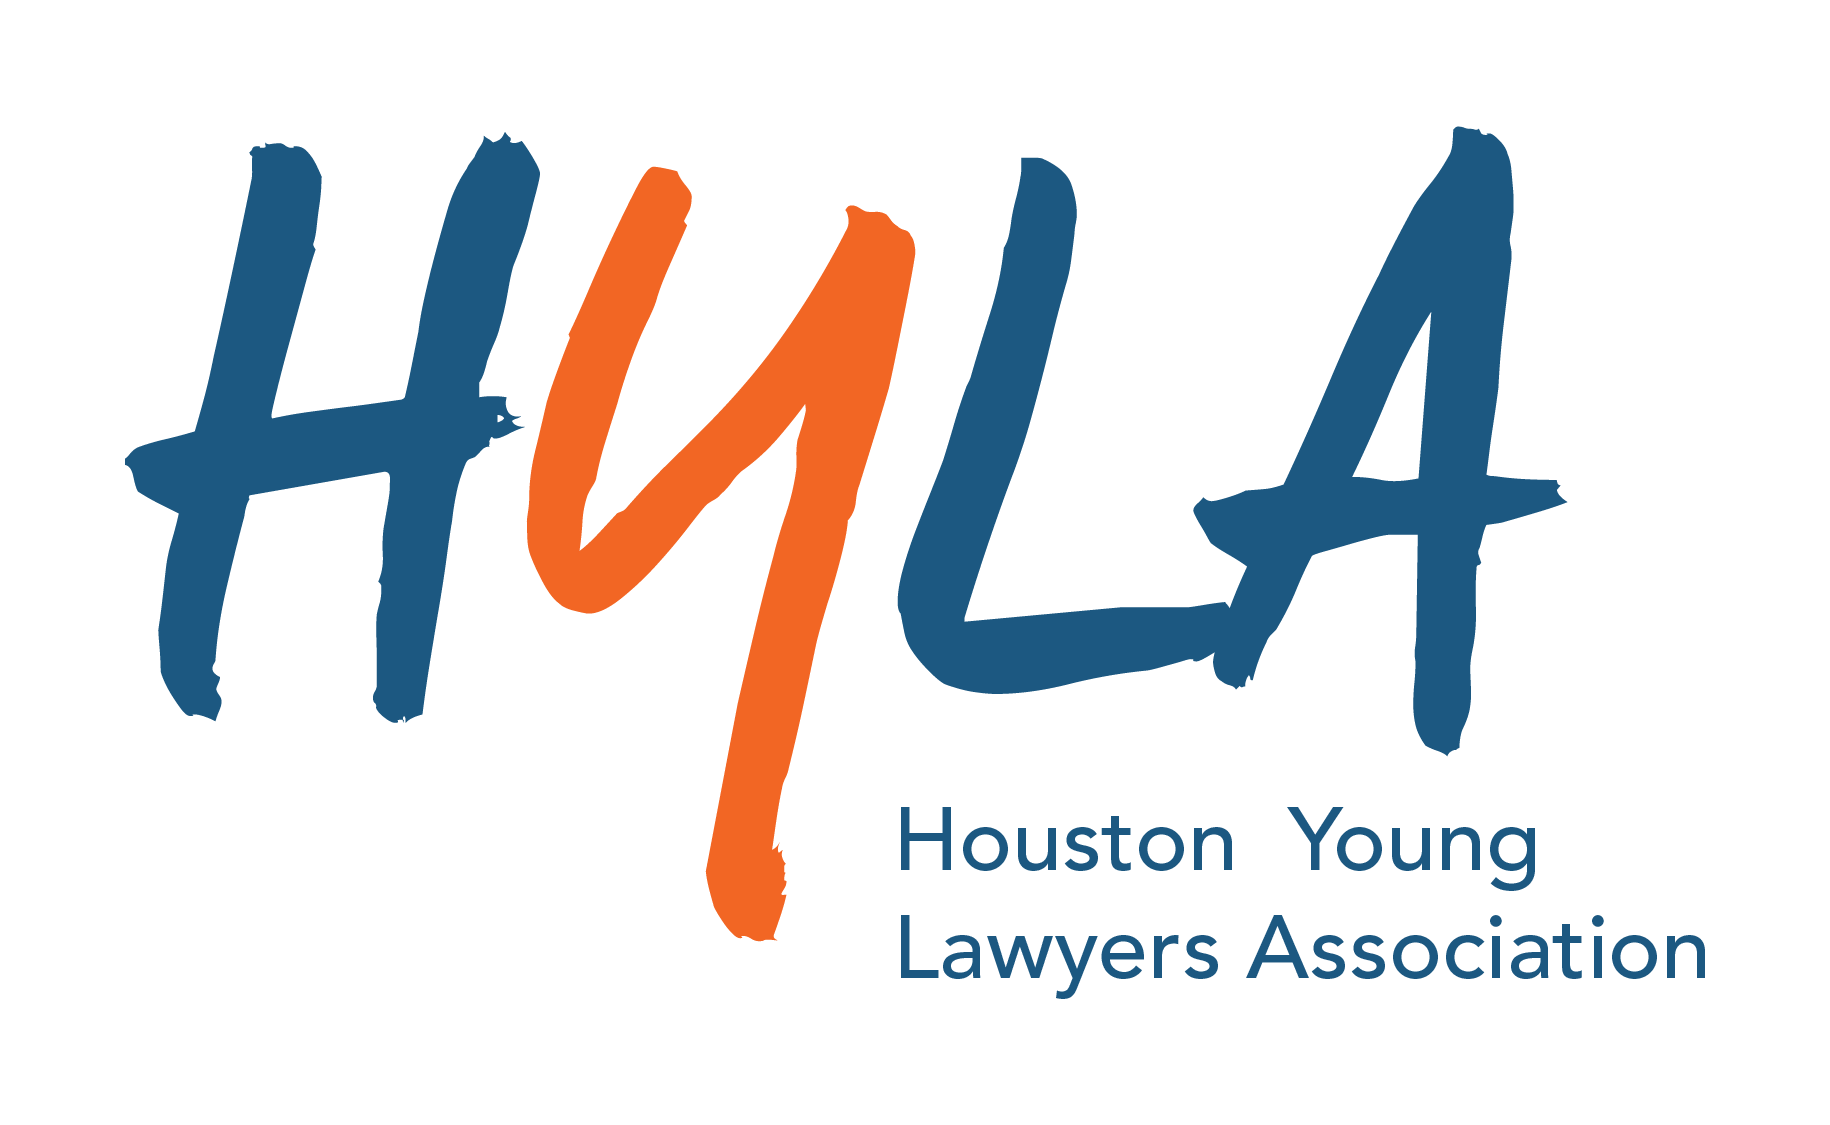 Personal Injury Lawyer - Houston Young Lawyers Association